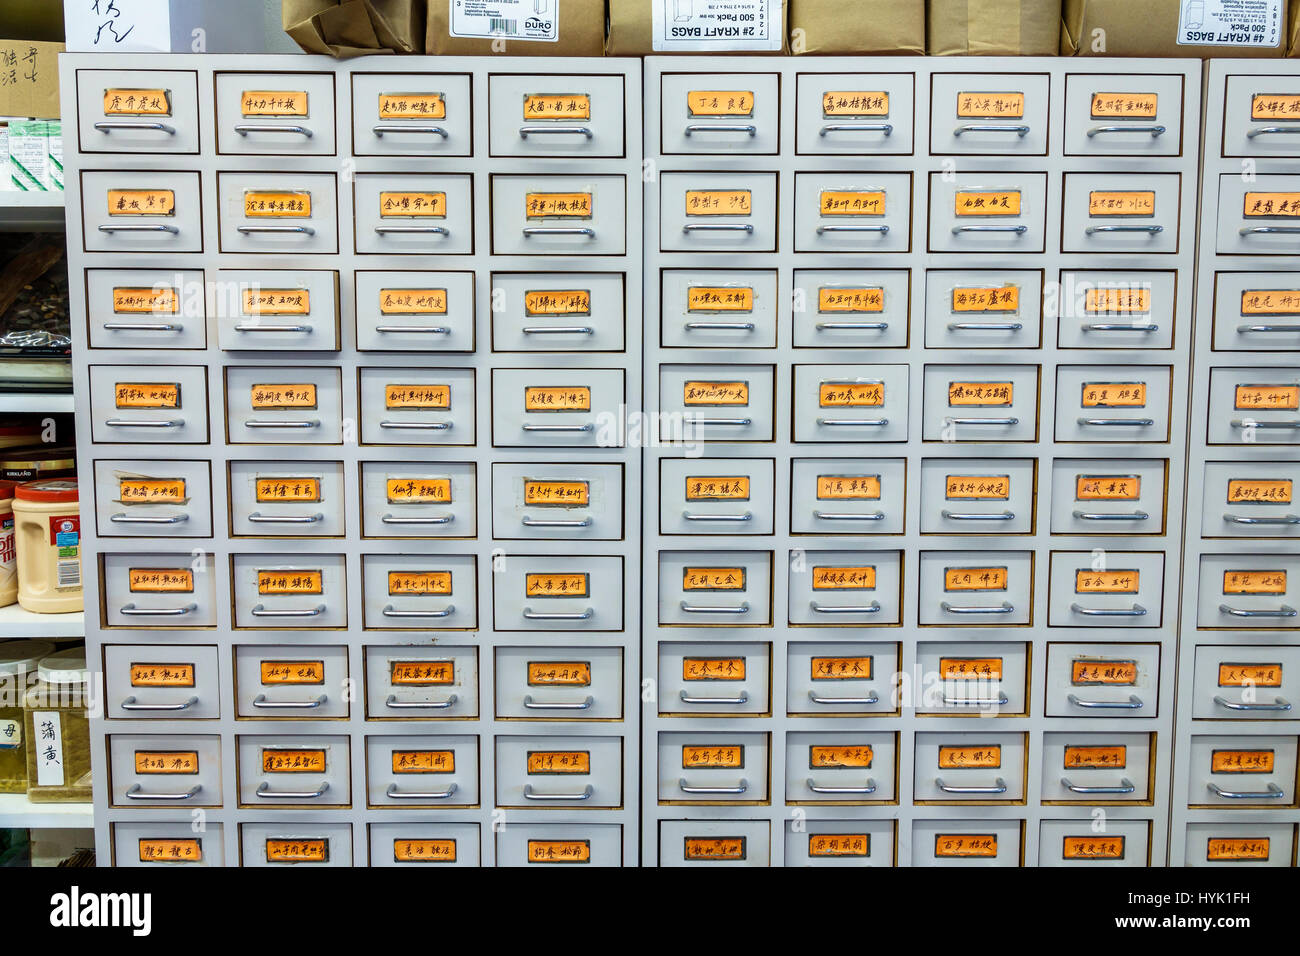 Orlando Chinatown Florida Health Food City health market Oriental alternative medicine pharmacy herb cabinet drawers - Stock Image